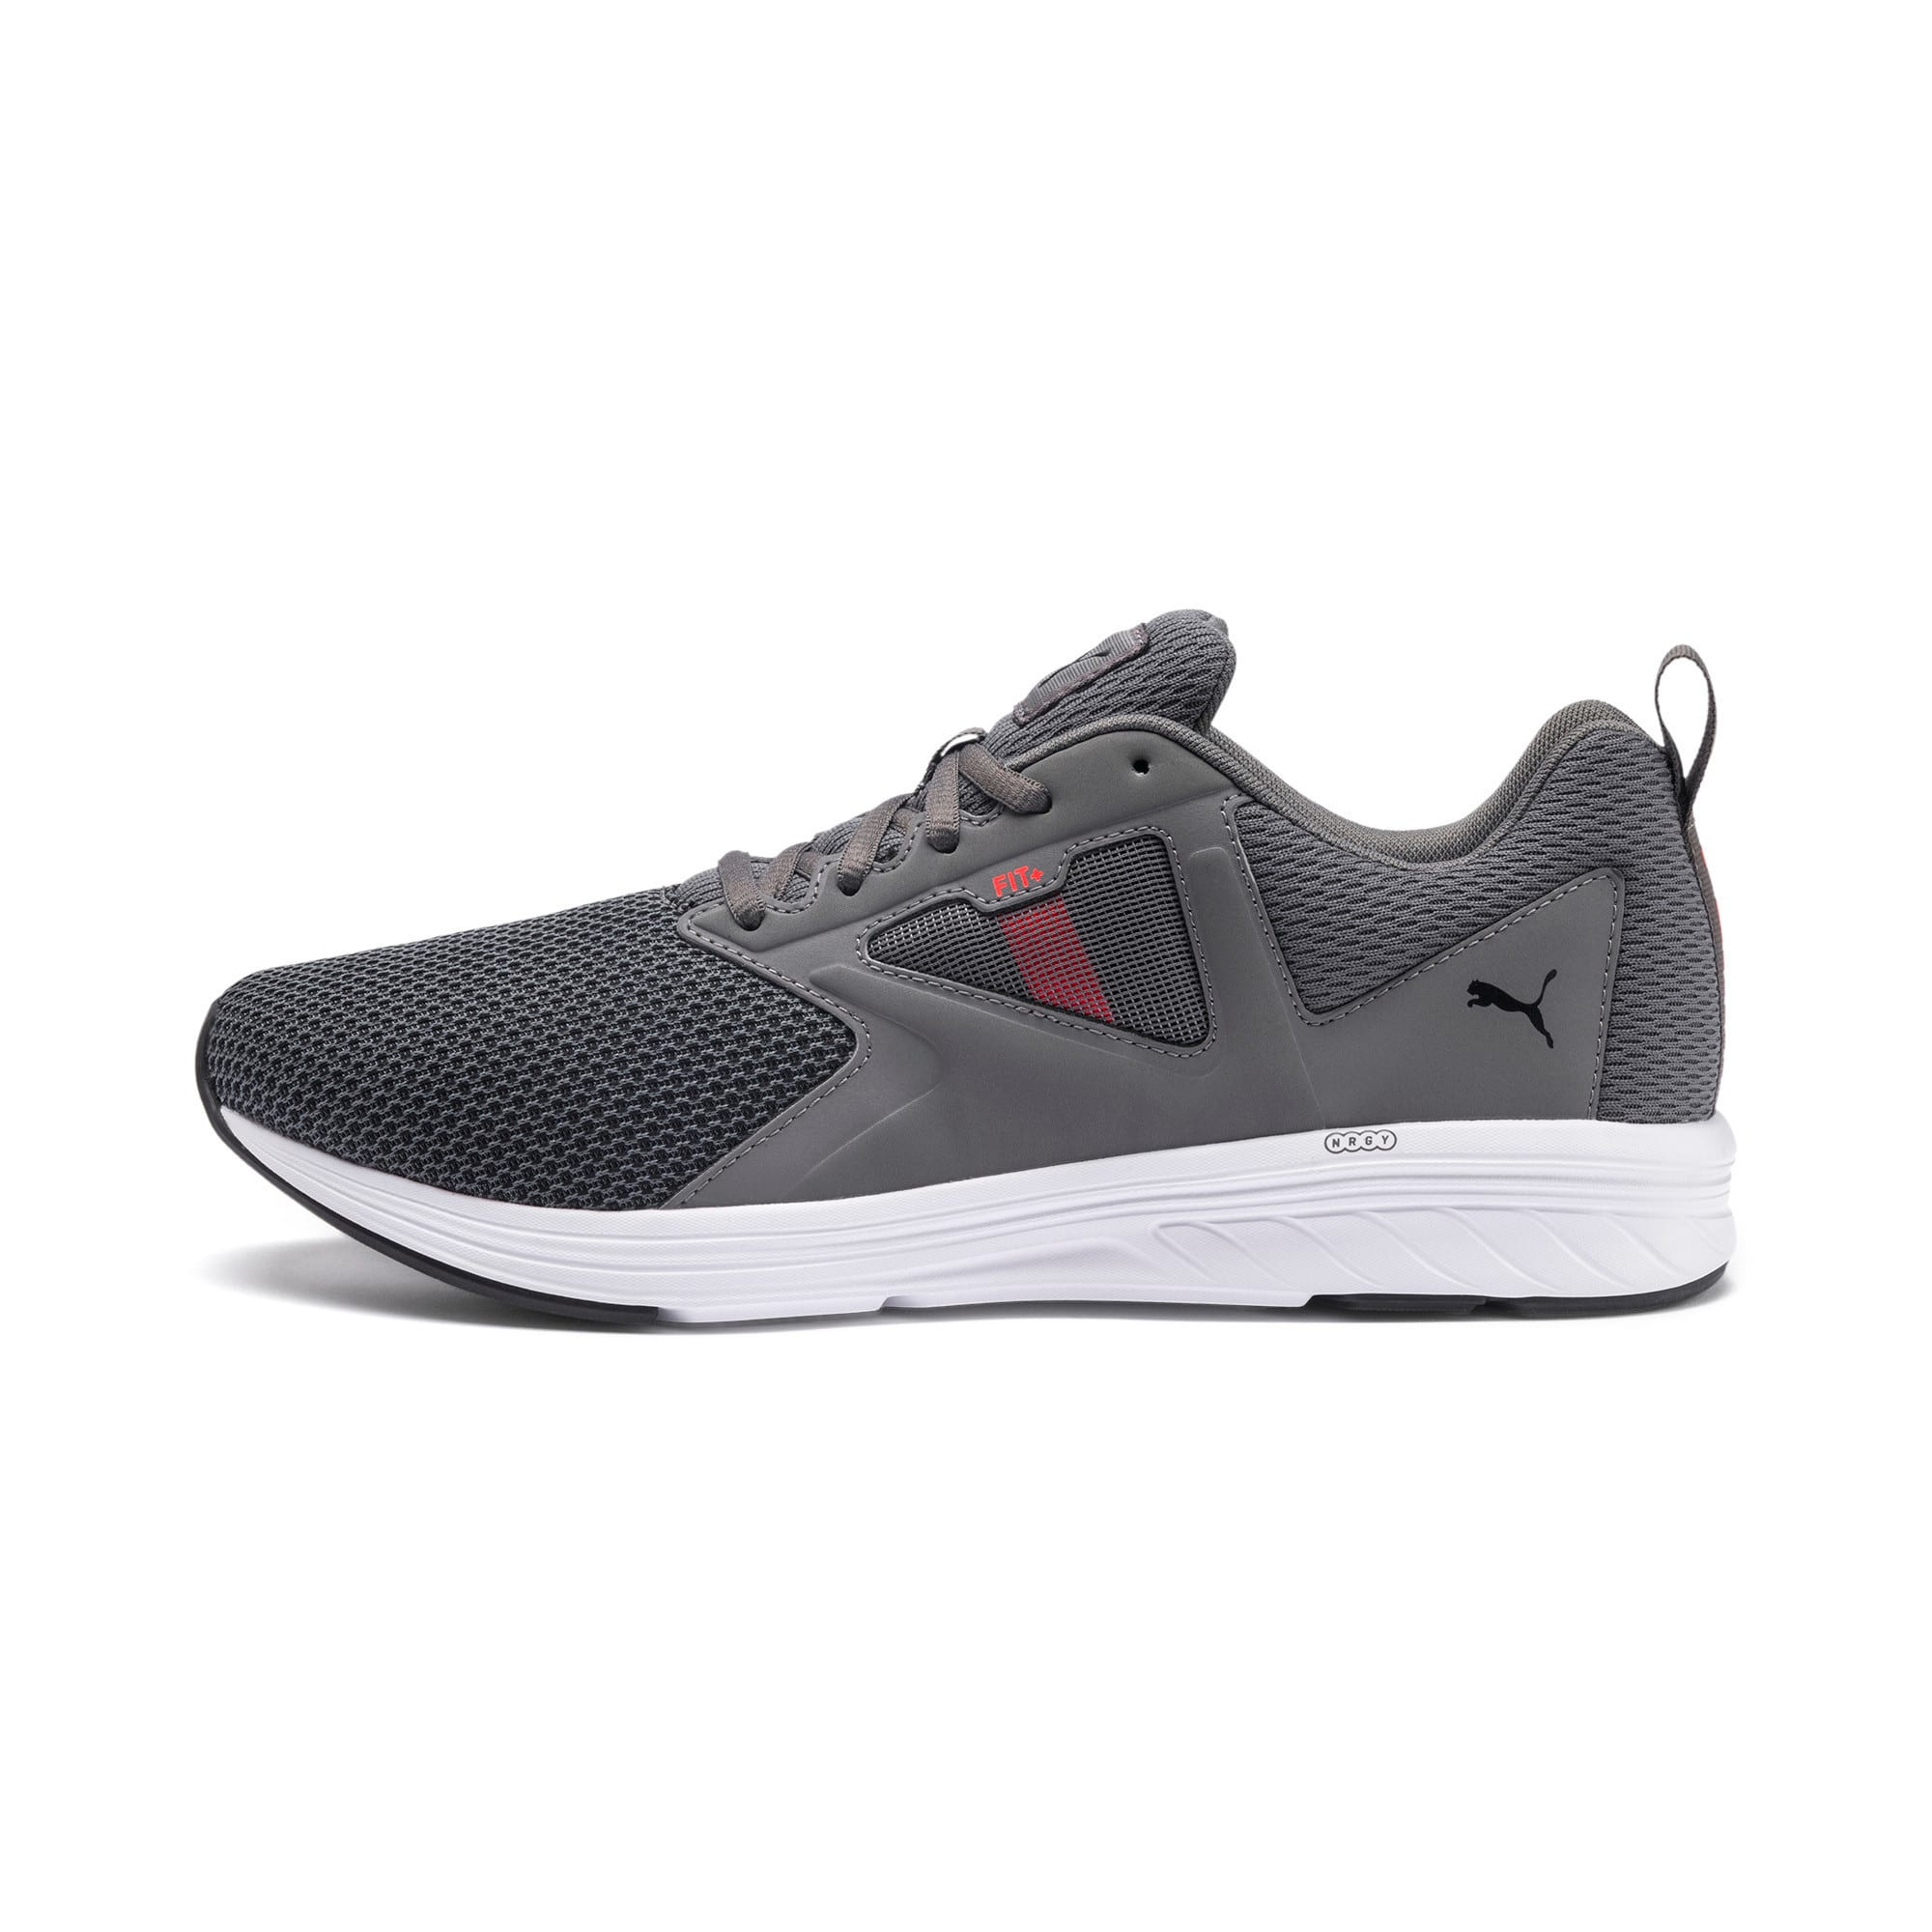 Thumbnail 1 of NRGY Asteroid Running Shoes, CASTLEROCK-Puma White, medium-IND